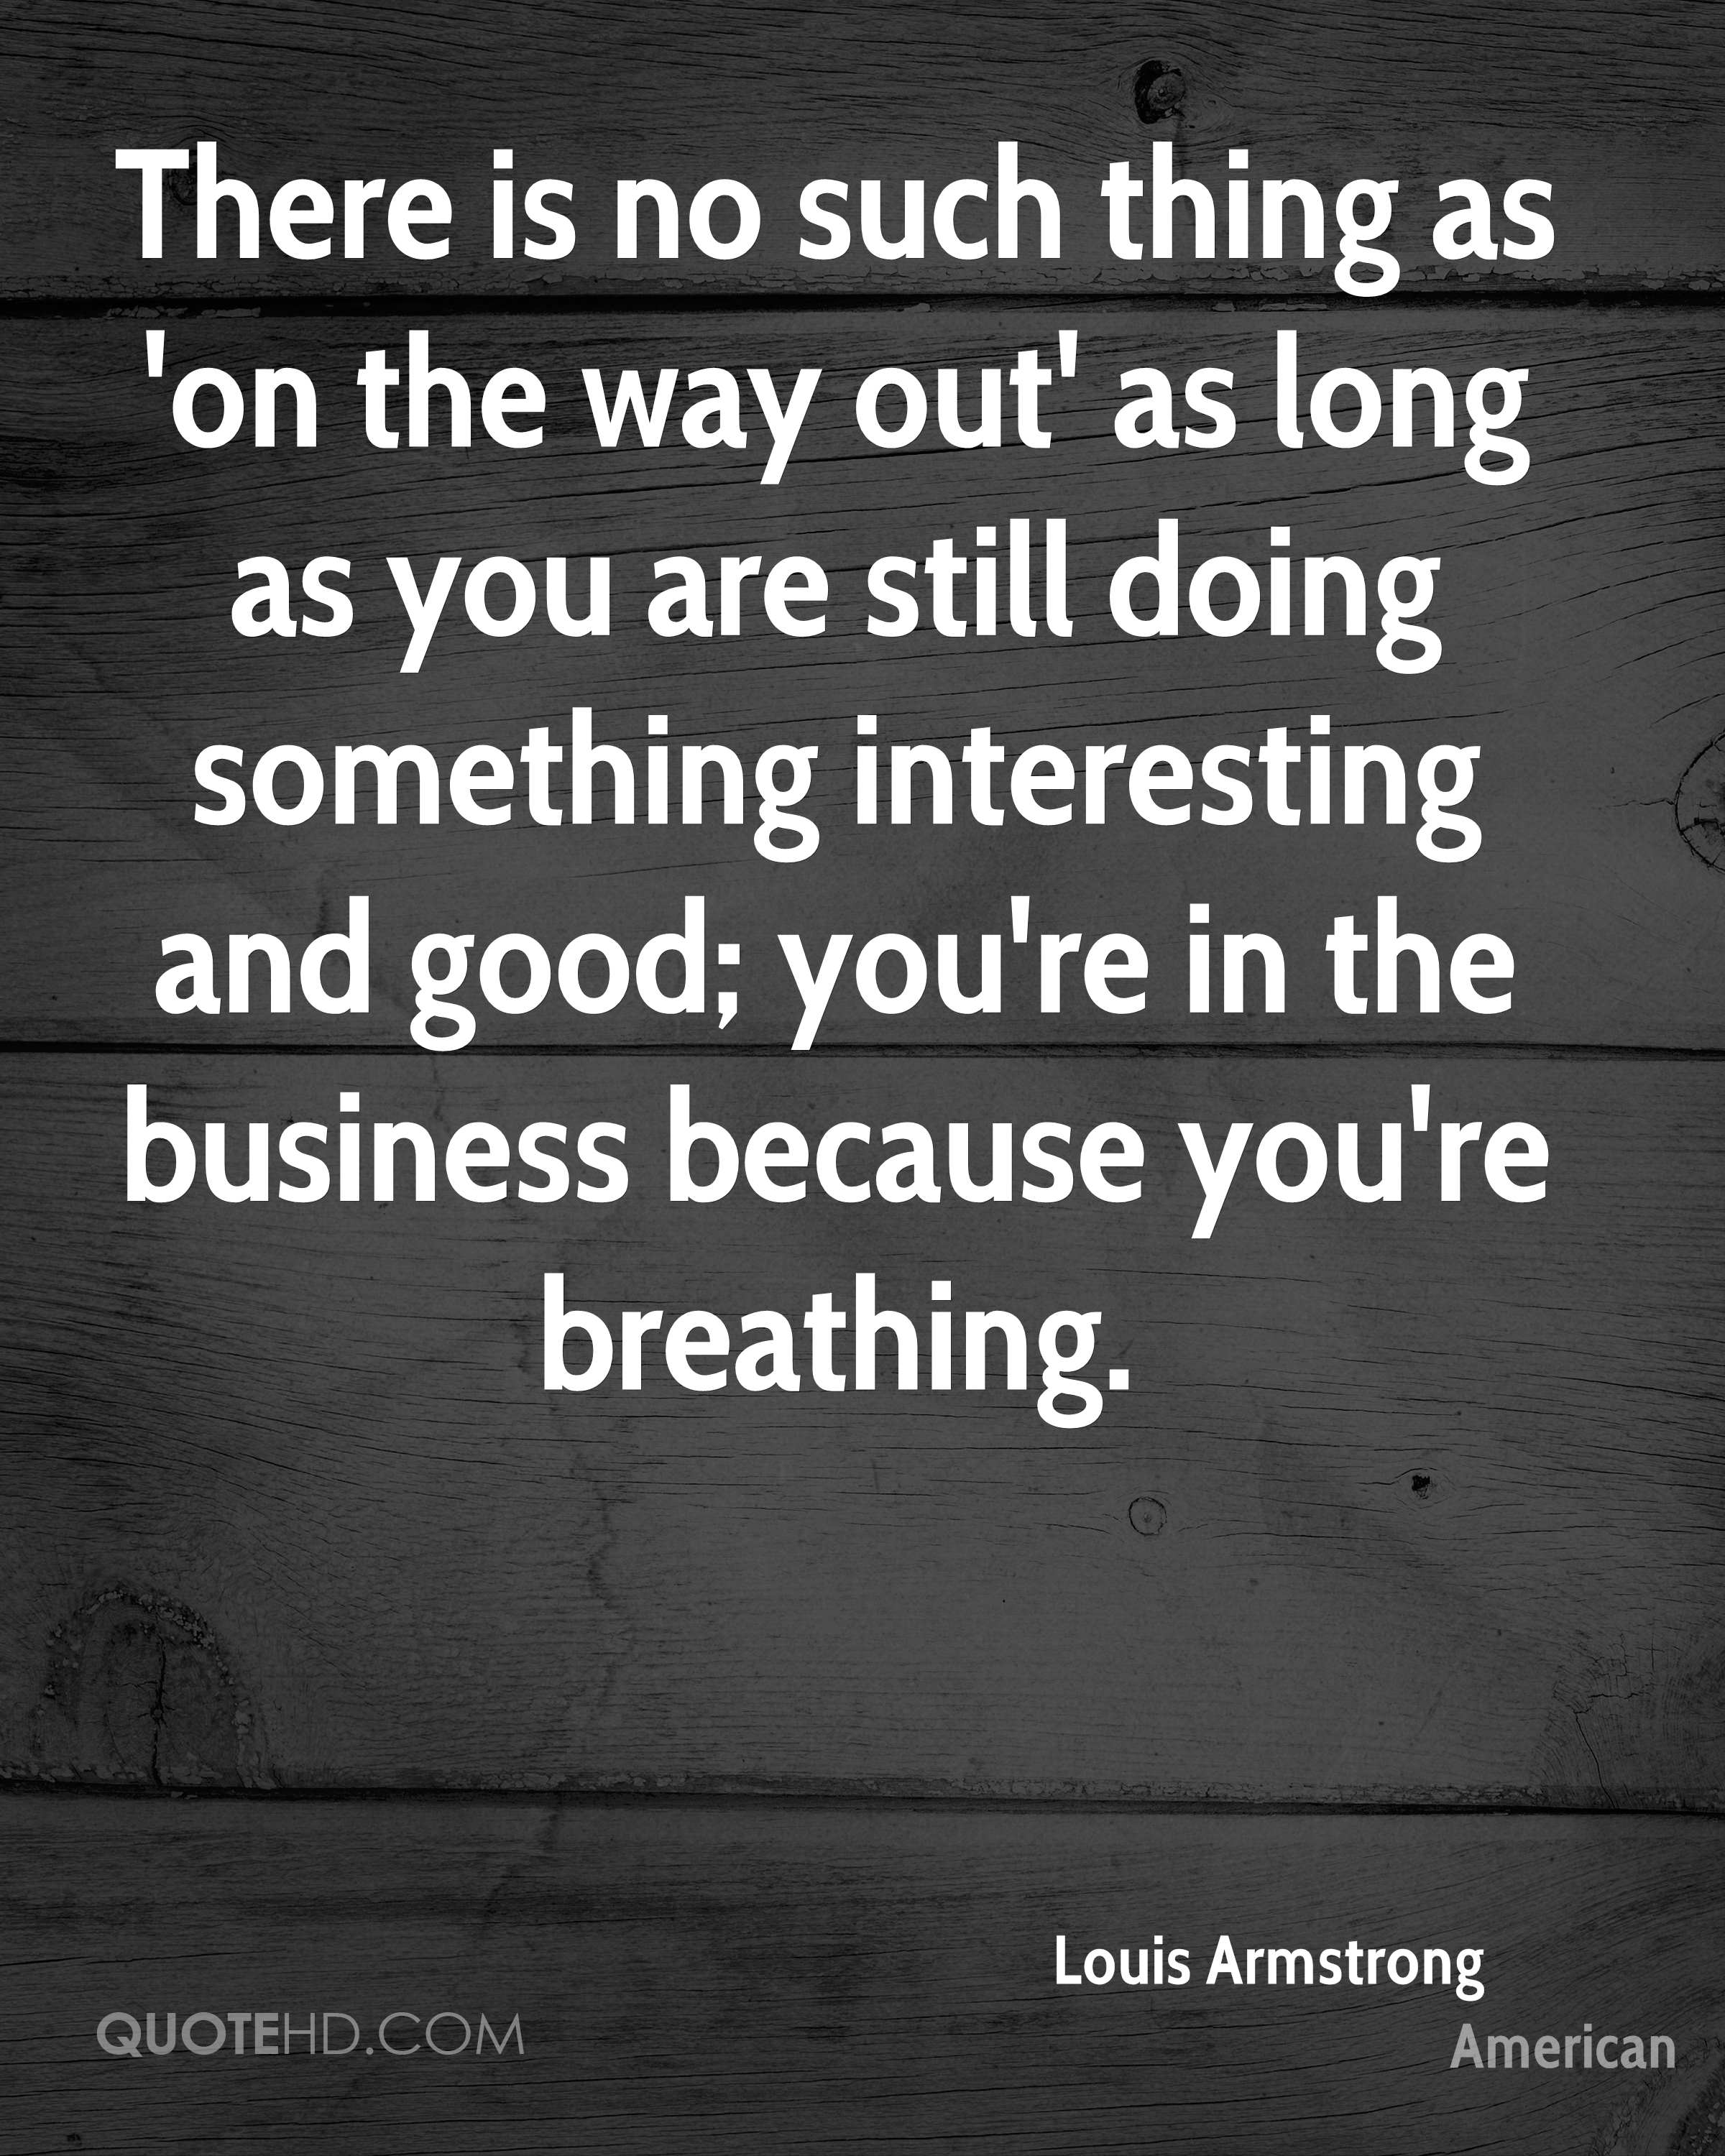 There is no such thing as 'on the way out' as long as you are still doing something interesting and good; you're in the business because you're breathing.